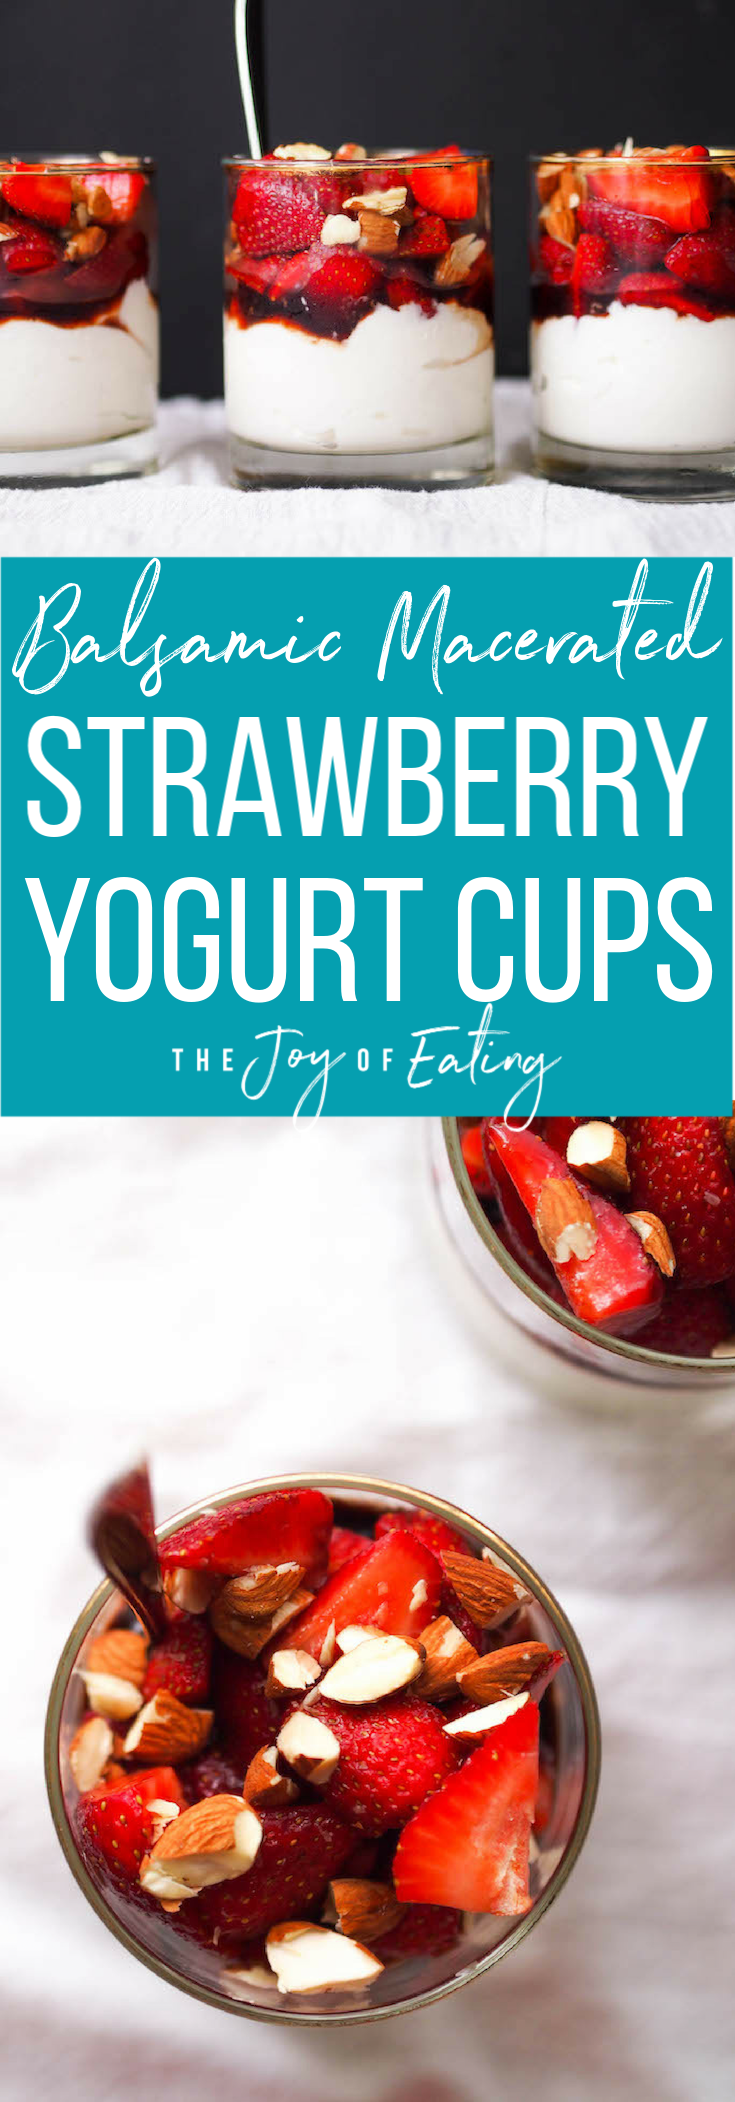 Balsamic Macerated Strawberry Yogurt Cups are an easy and elegant snack! #yogurtcup #snack #breakfast #brunch #yogurt #strawberry #recipe #dessert #strawberry #balsamic